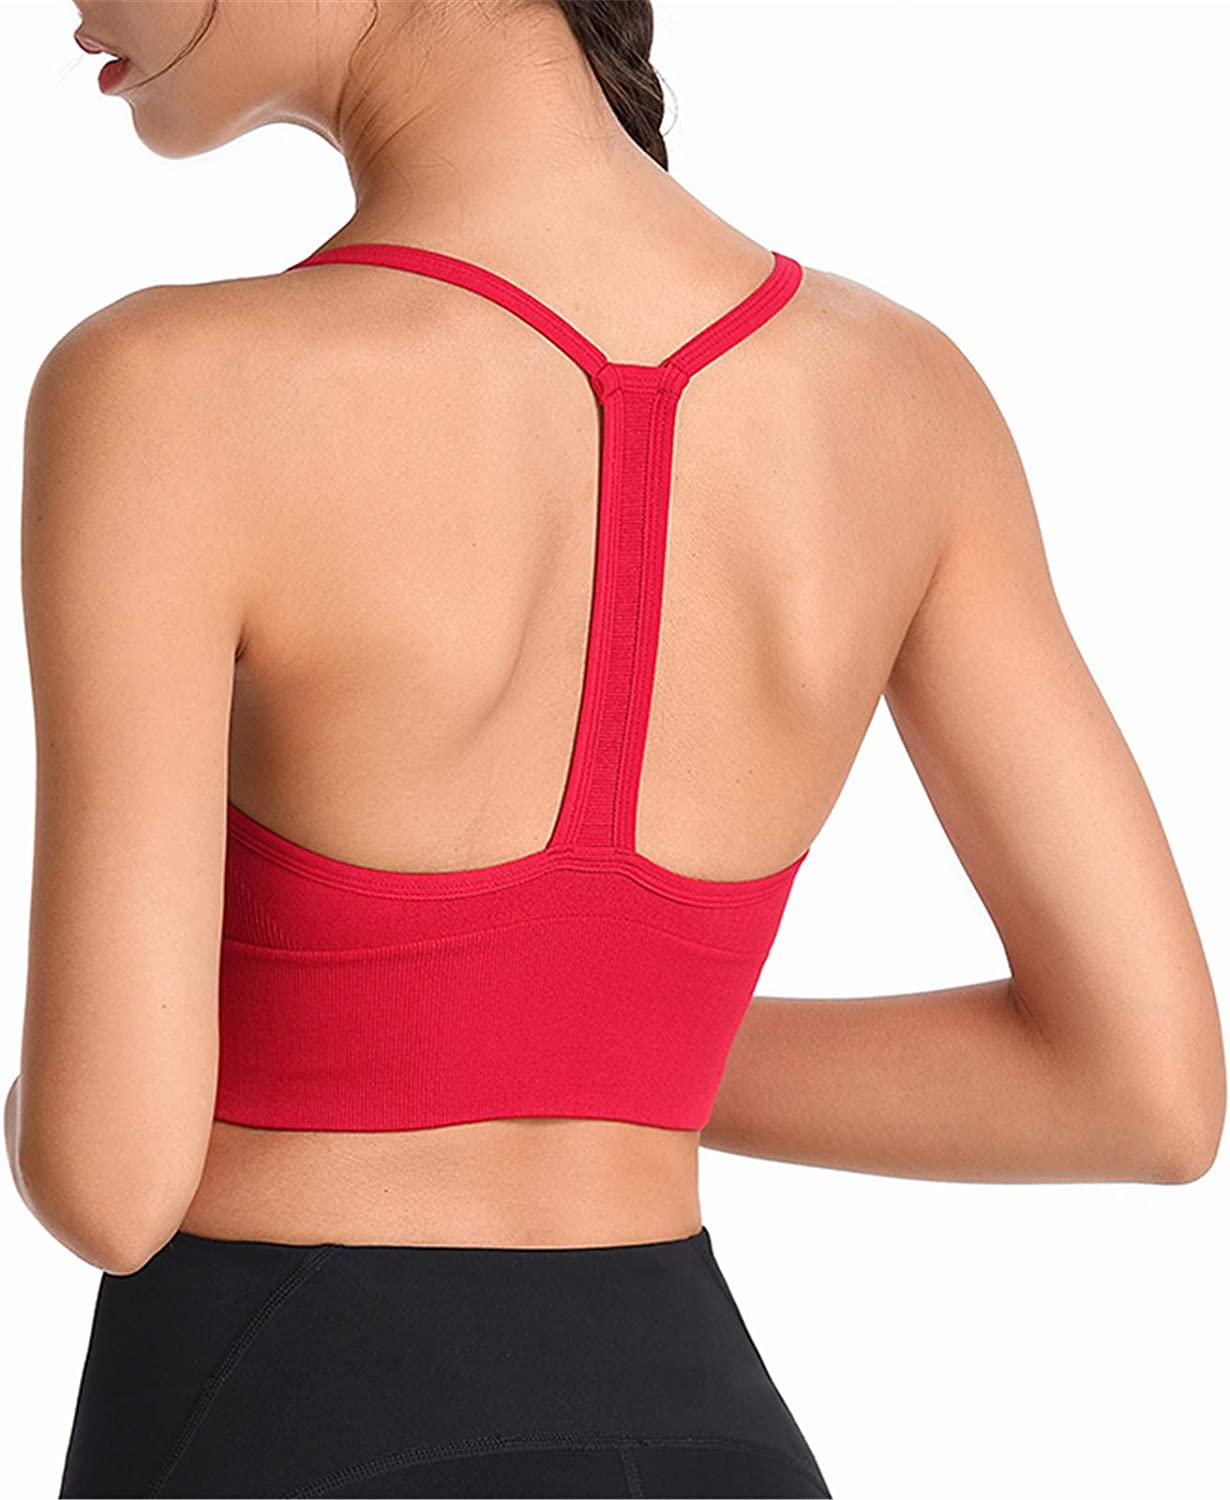 Women Bras, Women's Quick Dry Camisole Cami Tops Running Fitness Underwear Tees Shirt Basic Solid Cropper Tanks